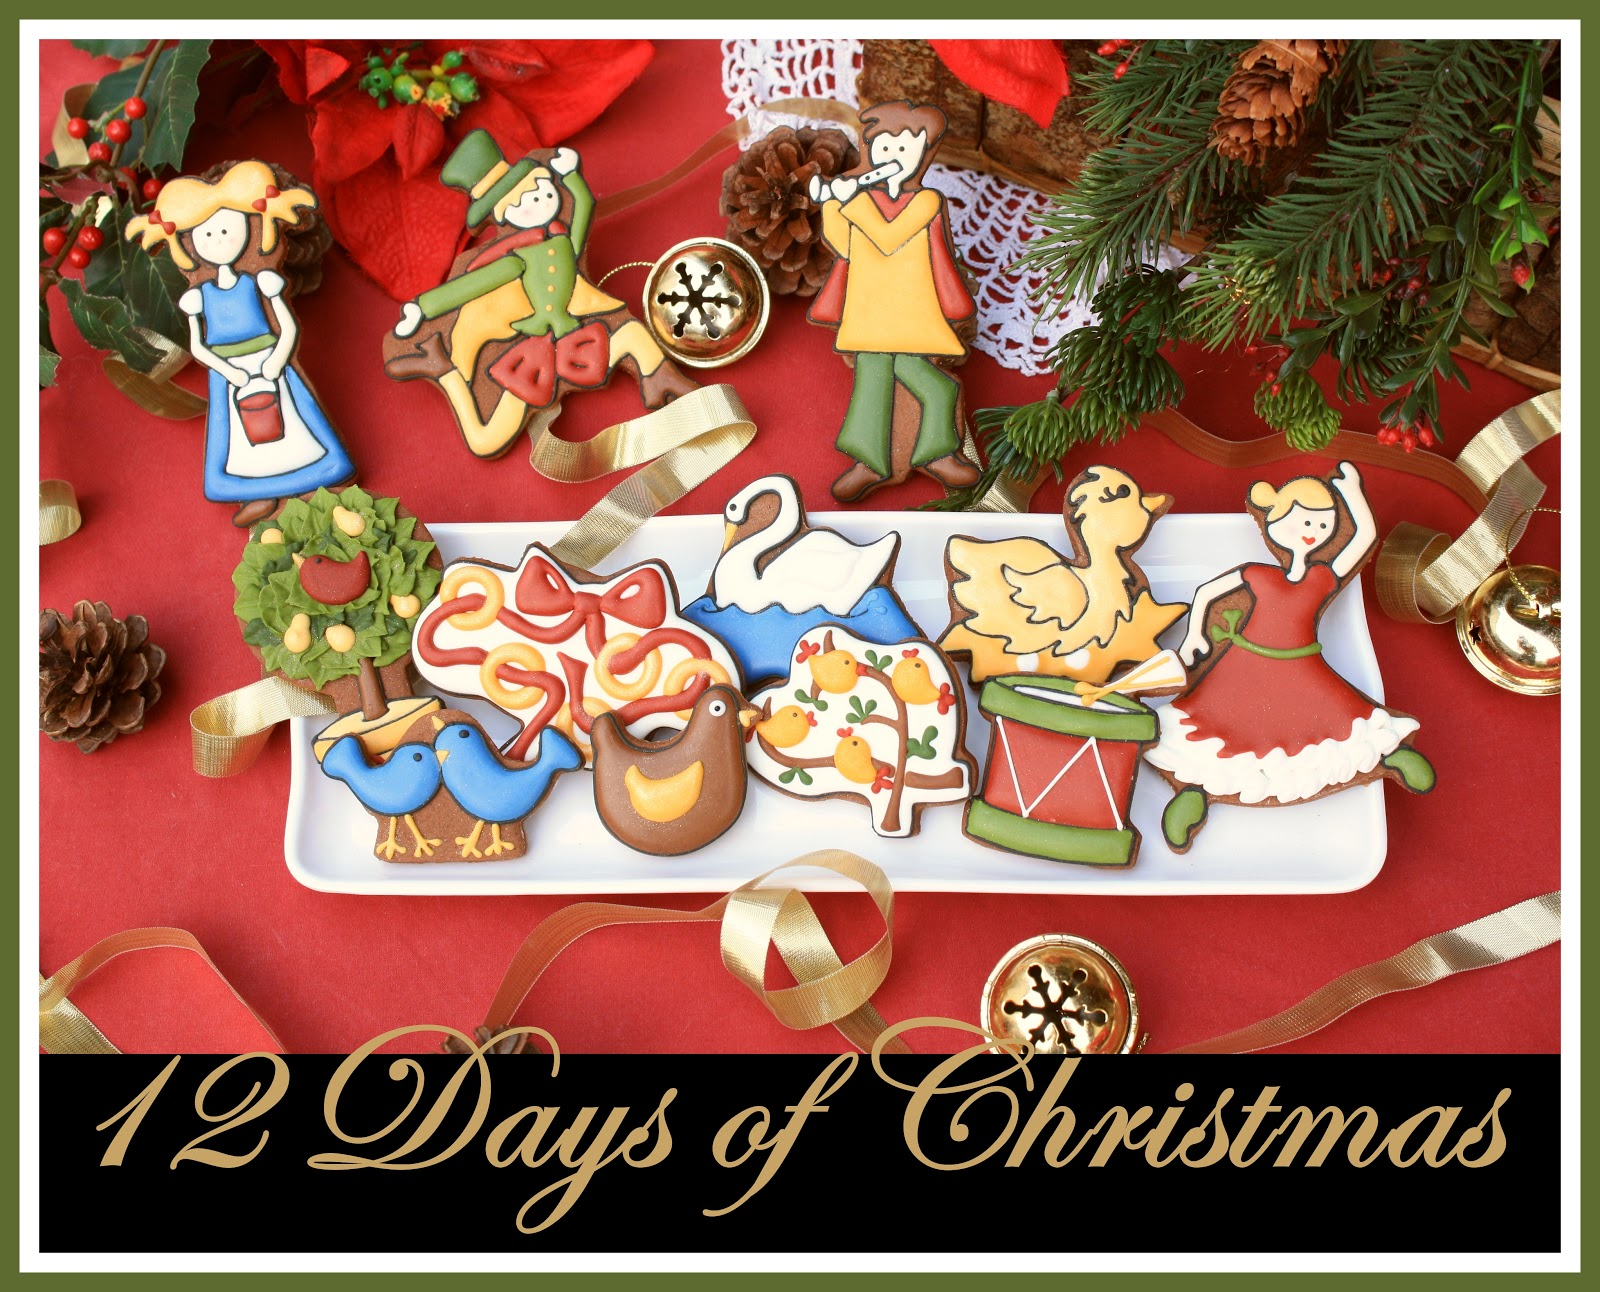 12 Days of Christmas Cookies | LilaLoa: 12 Days of Christmas Cookies